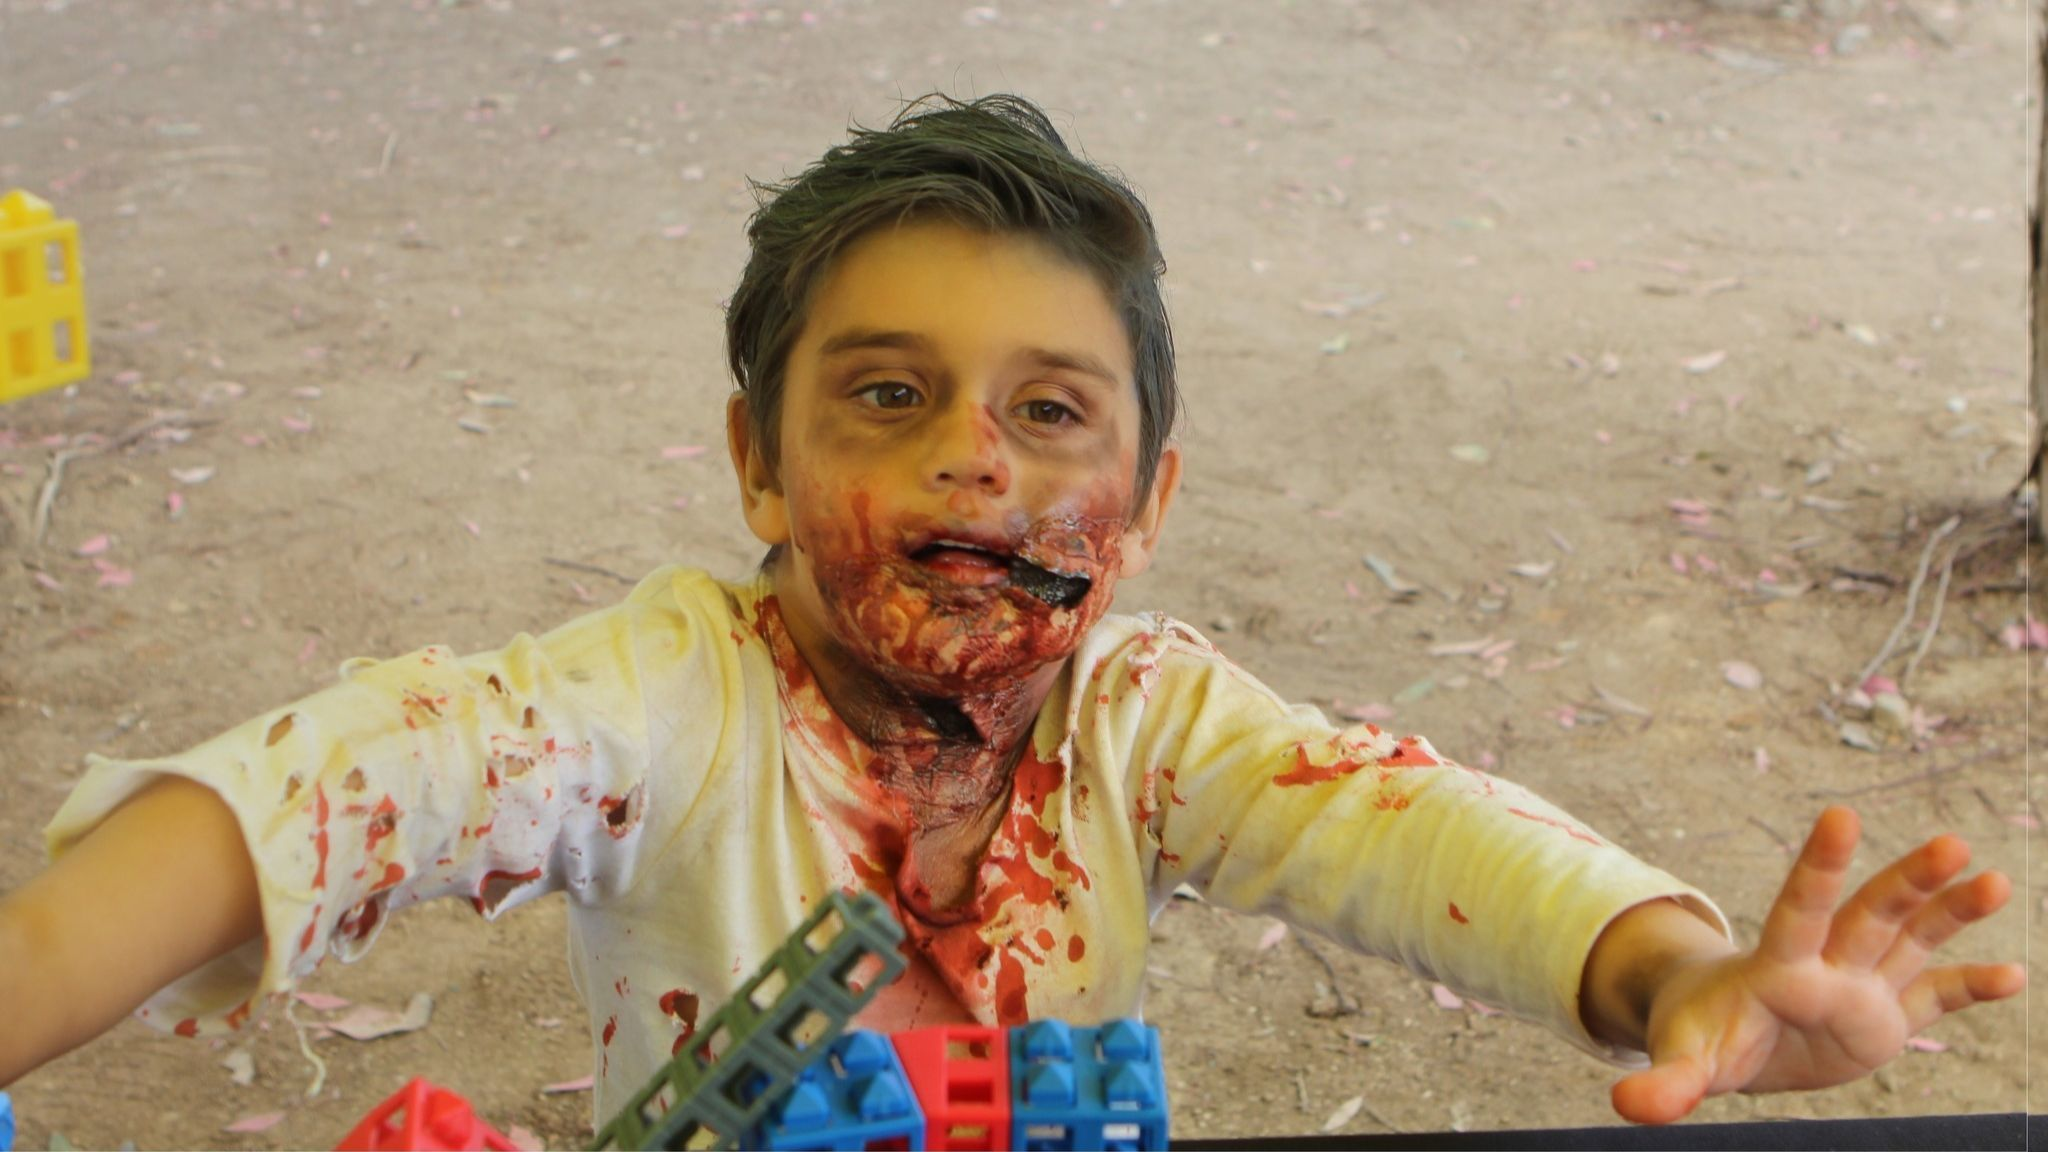 La Jolla resident Kingston Johnson, 3, prefers zombies to scientists.